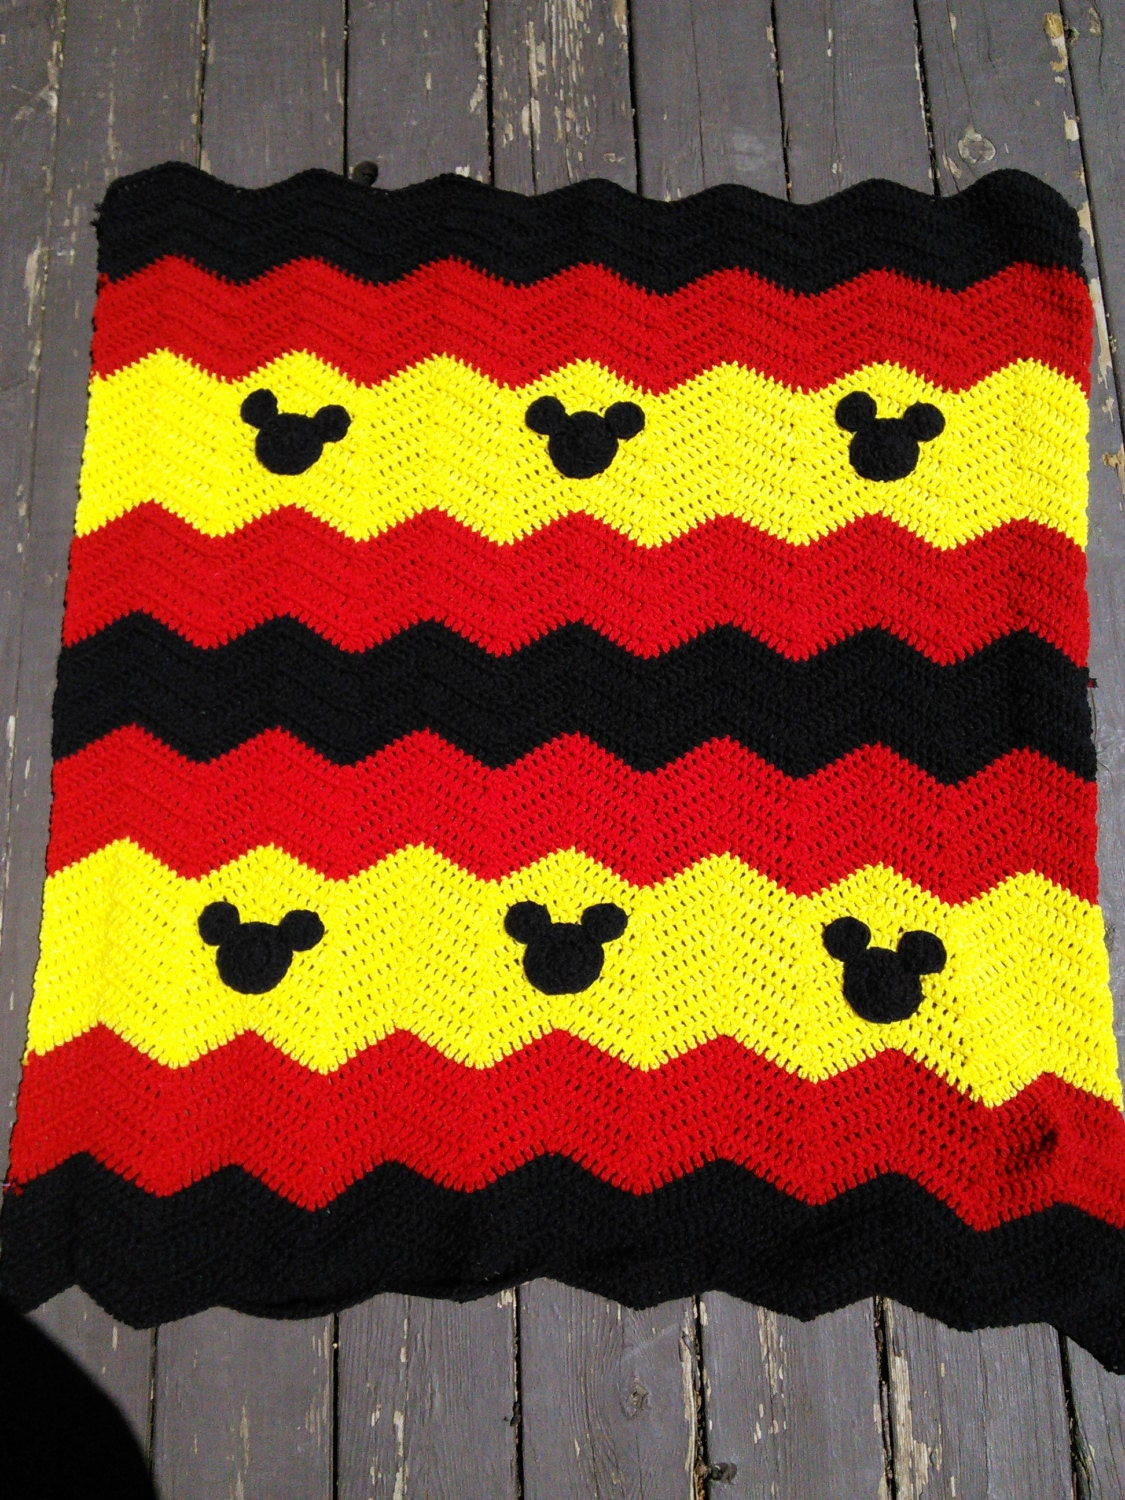 Red Black And Yellow Mickey Minnie Mouse Crochet Baby Afghan